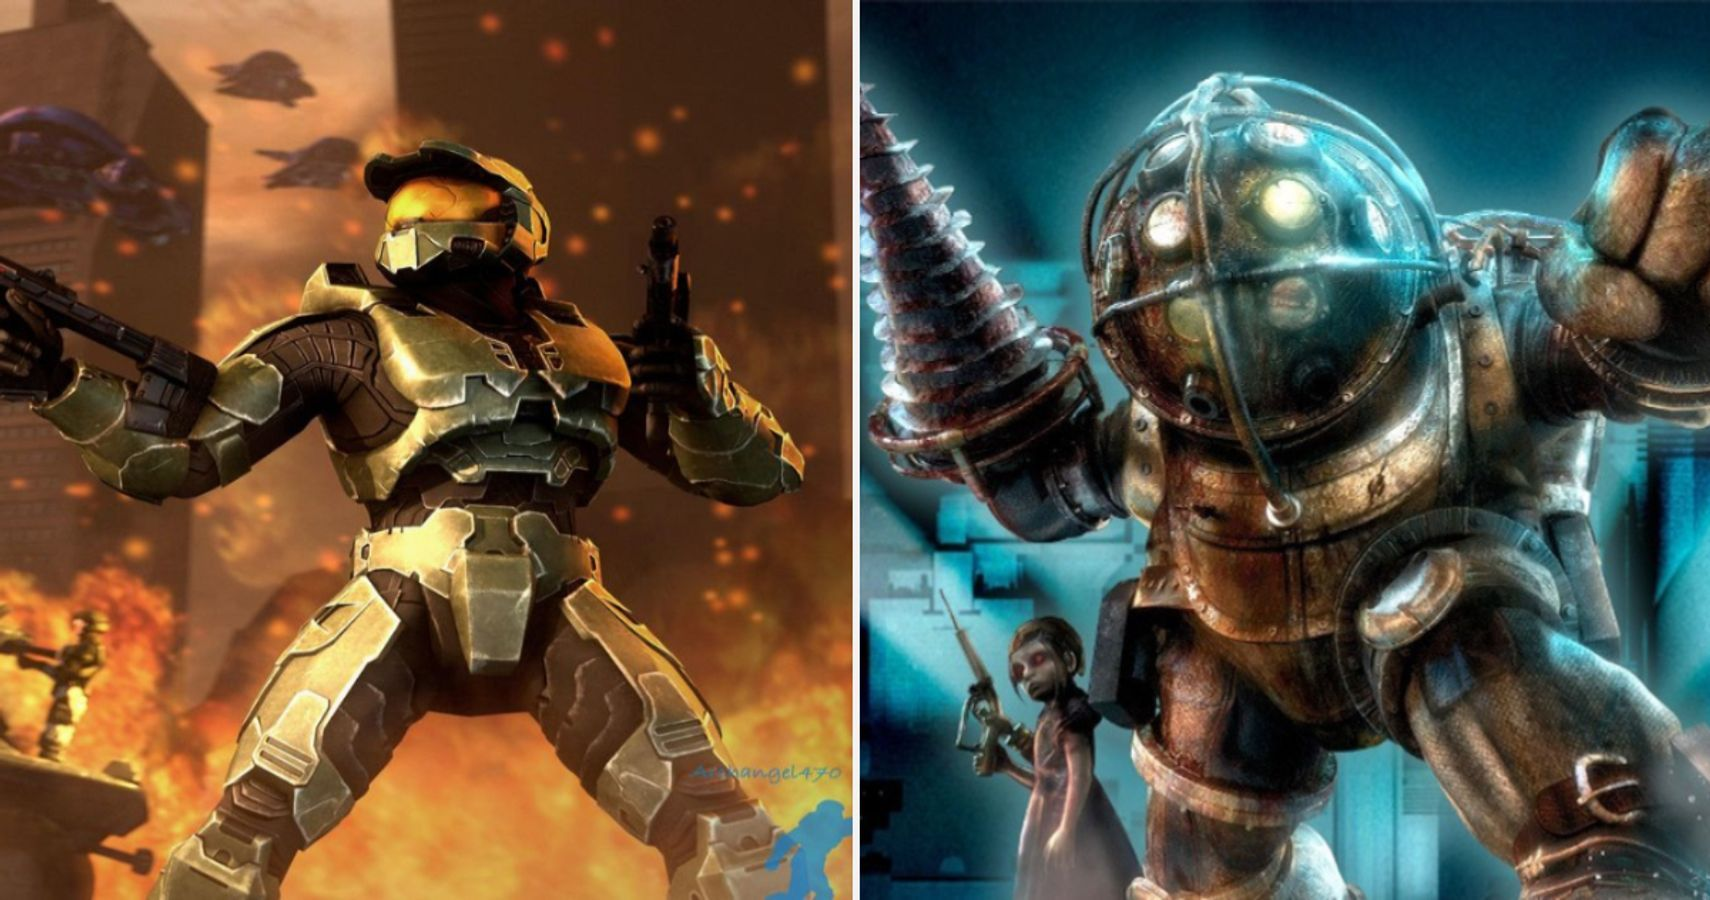 The 10 Best First Person Shooter Games (According To Metacritic)